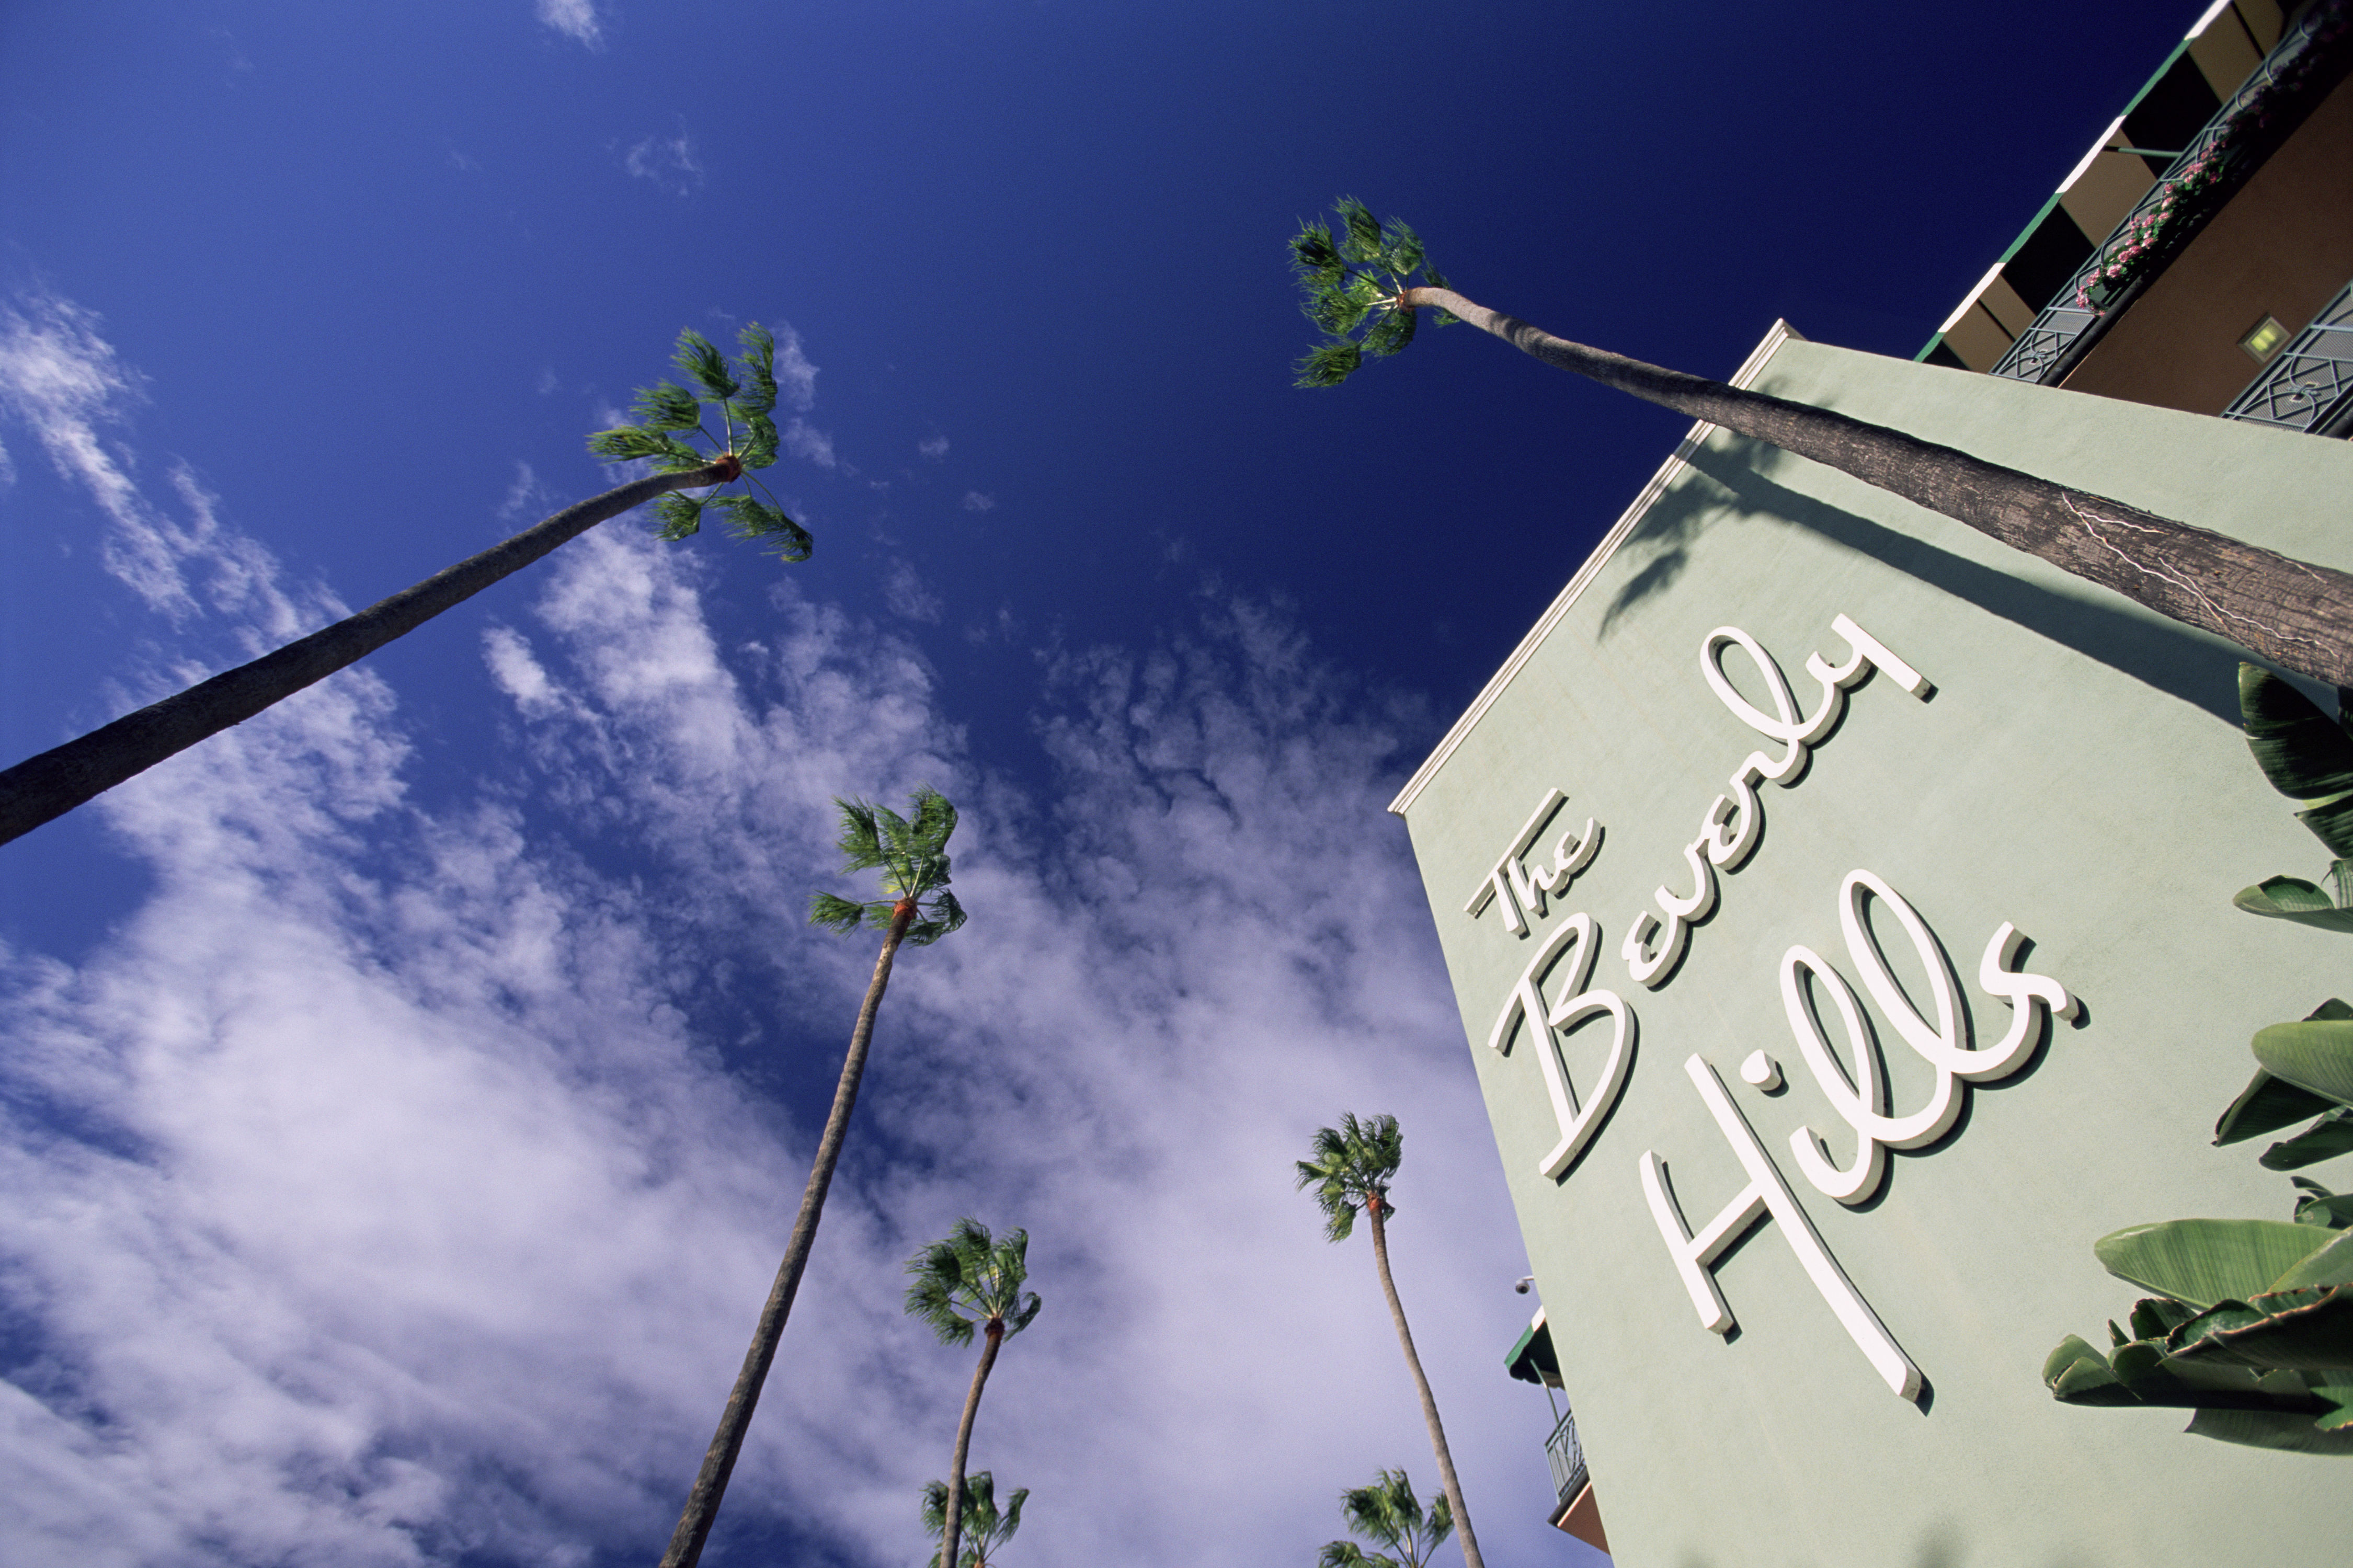 5 Things You Probably Didn't Know About Troop Beverly Hills